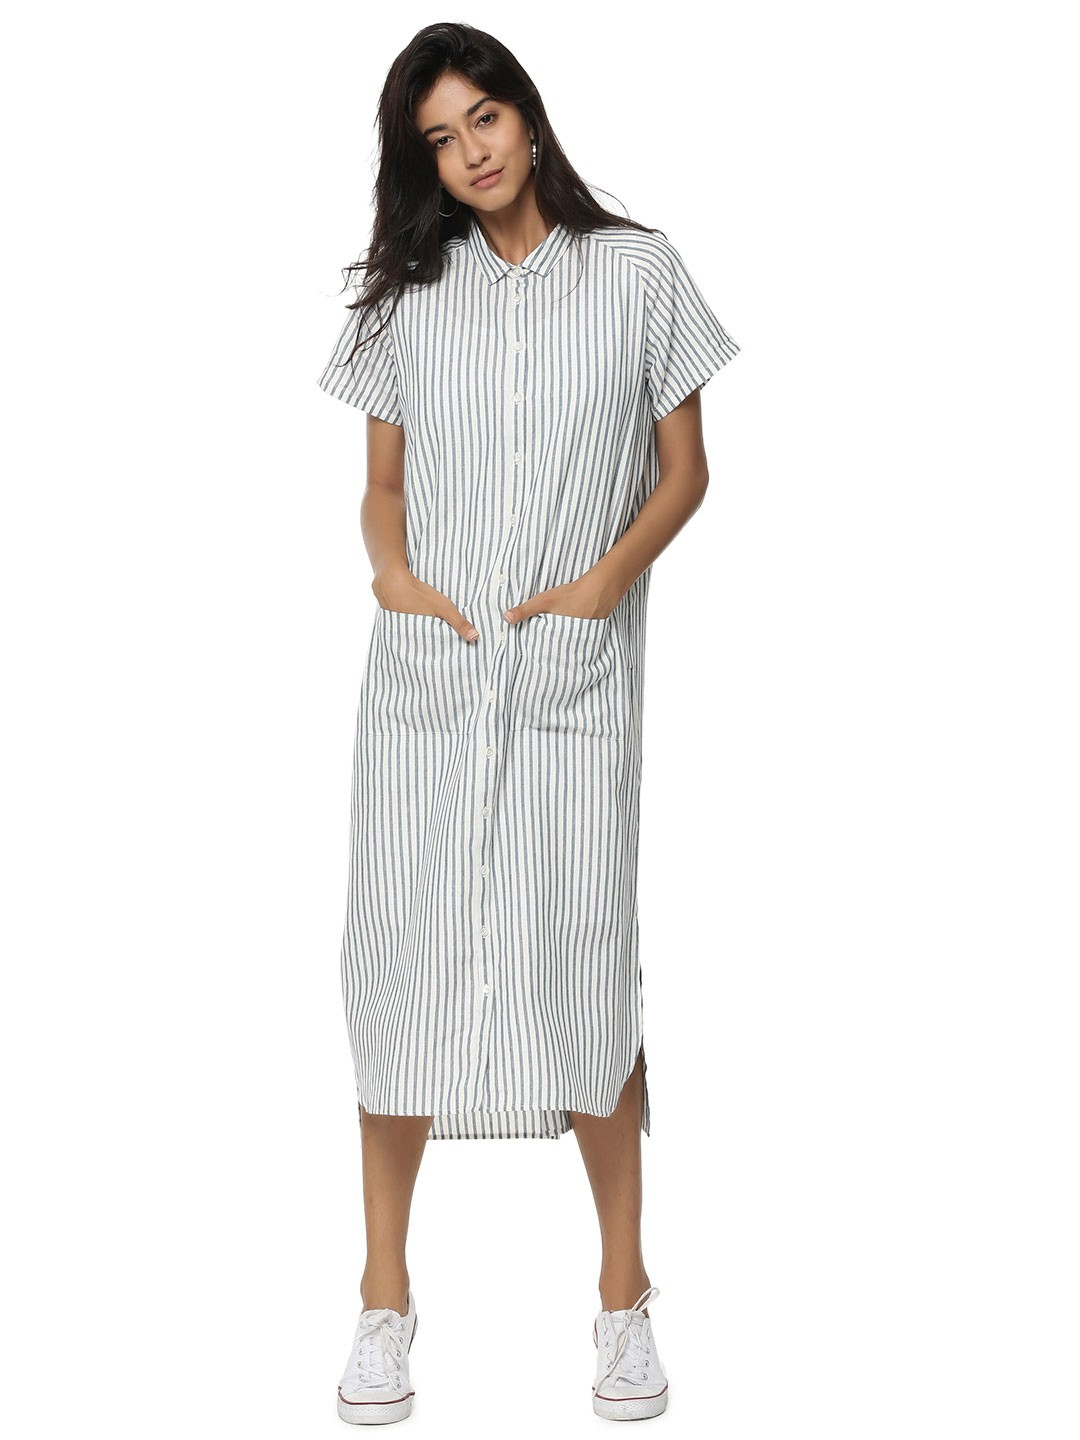 Explore Maxi Dresses at Forever 21! Find long dresses perfect for going out, weddings, and parties in floral, lace, and bodycon styles. Say yes to a white maxi dress, jump into denim overalls, or slip.